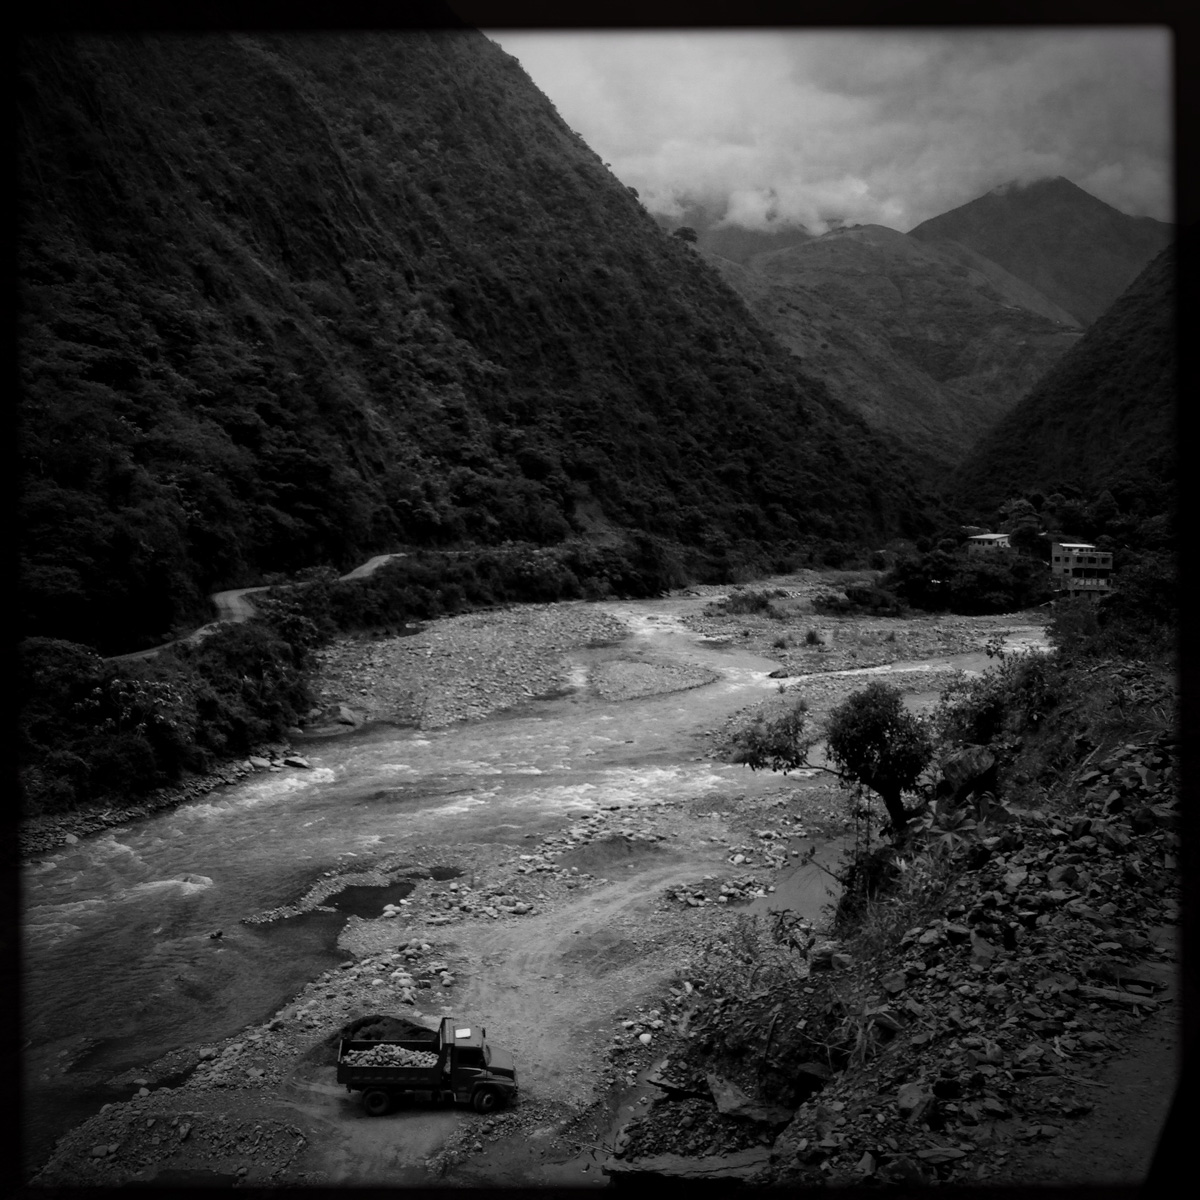 A truck loads gravel from a river bed running through a steep sided valley in *Los Yungas*, used to rebuild a road